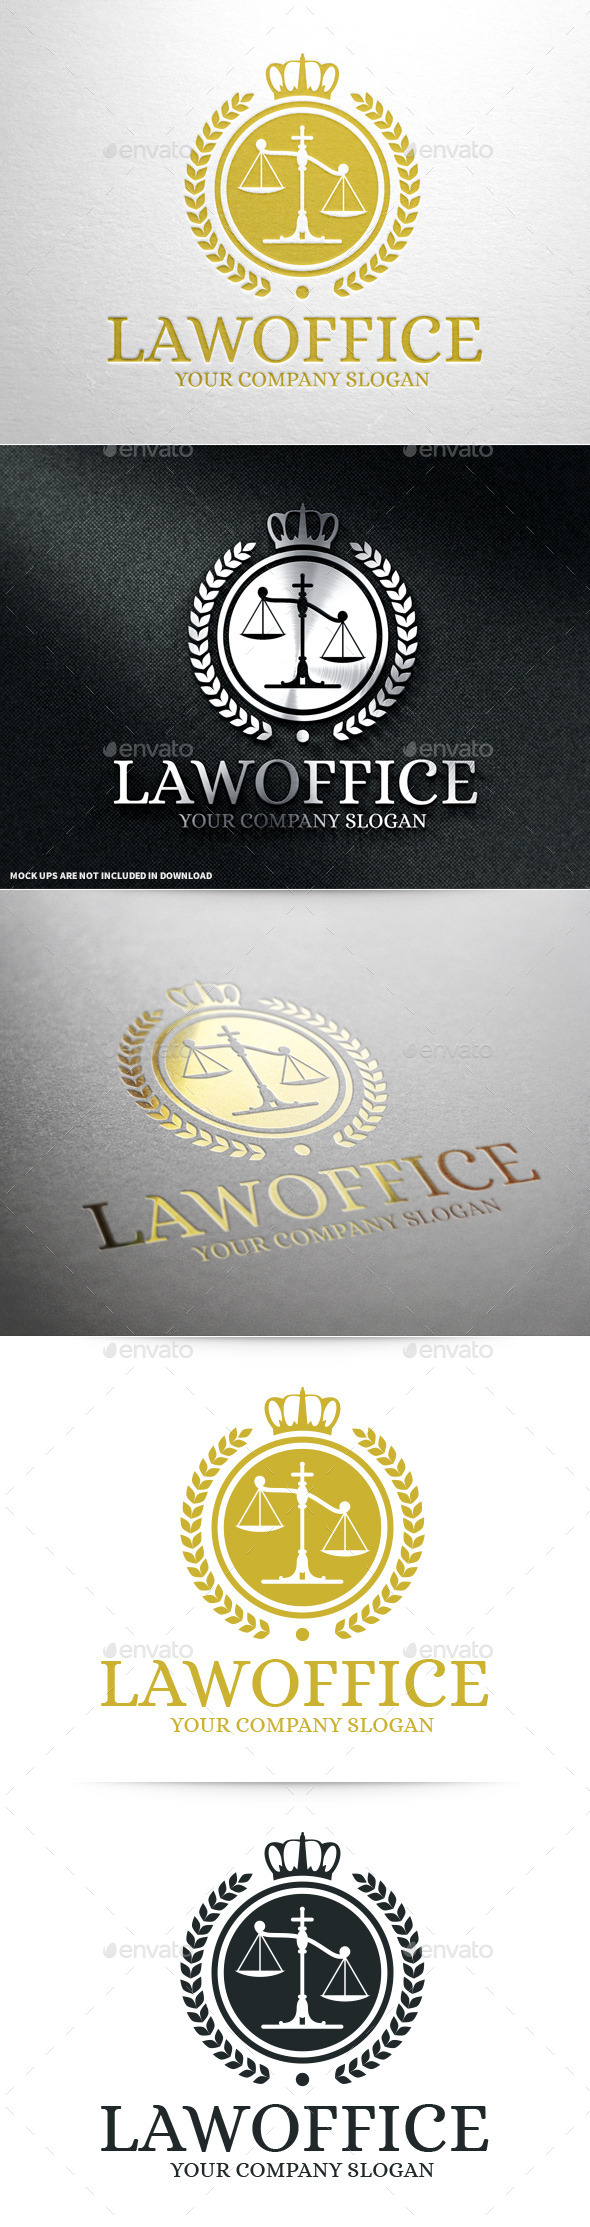 GraphicRiver Law Office Logo Template v2 10700525